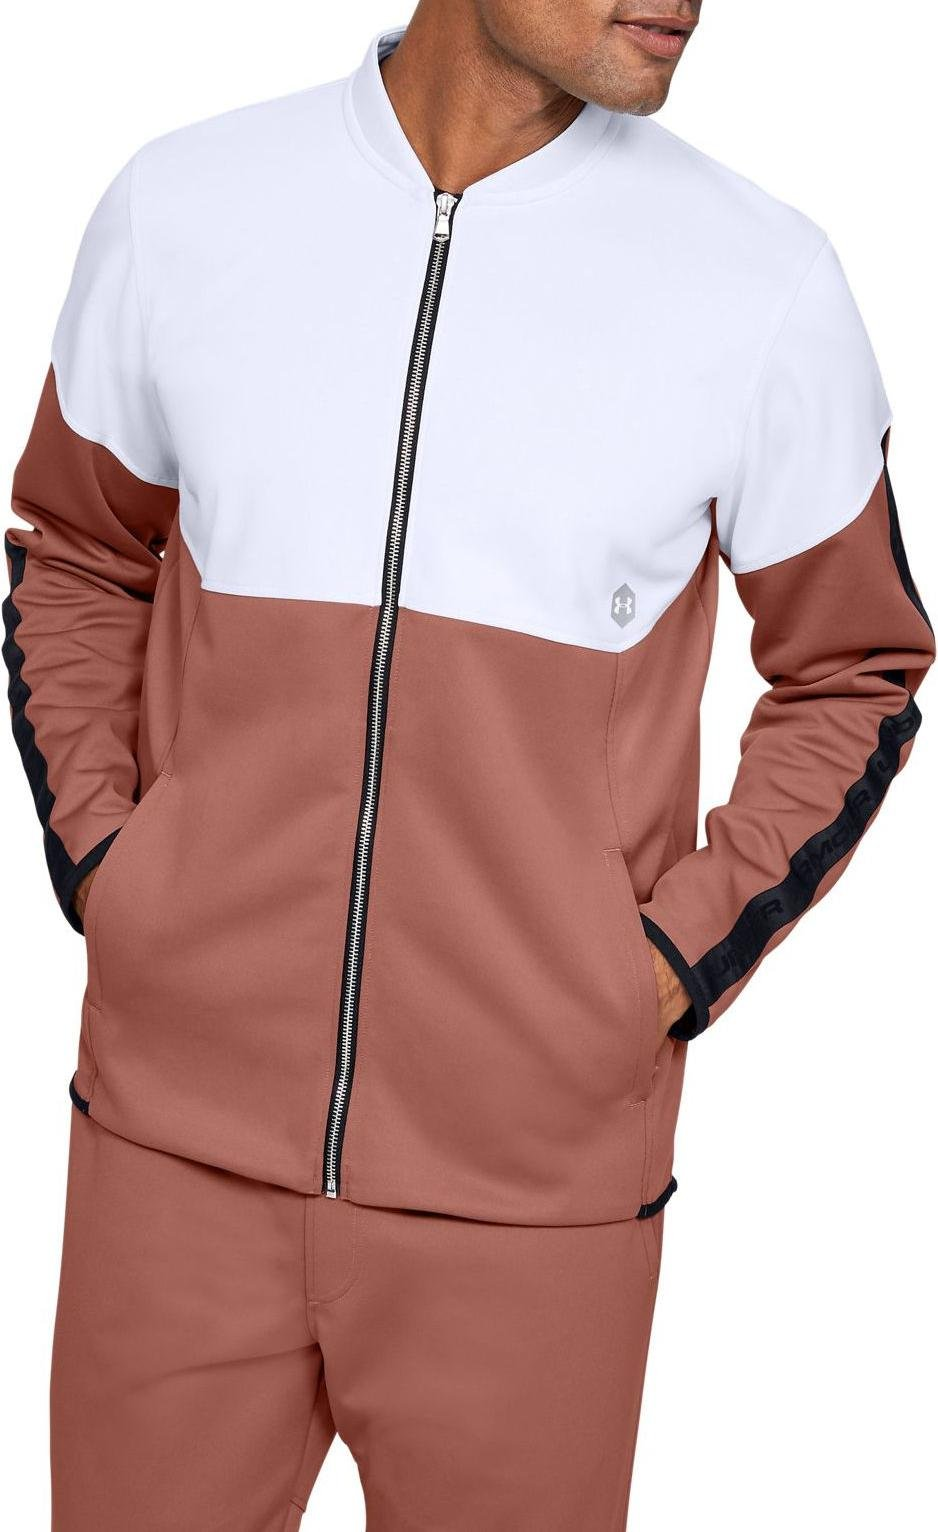 Veste Under Armour Athlete Recovery Knit Warm Up Top